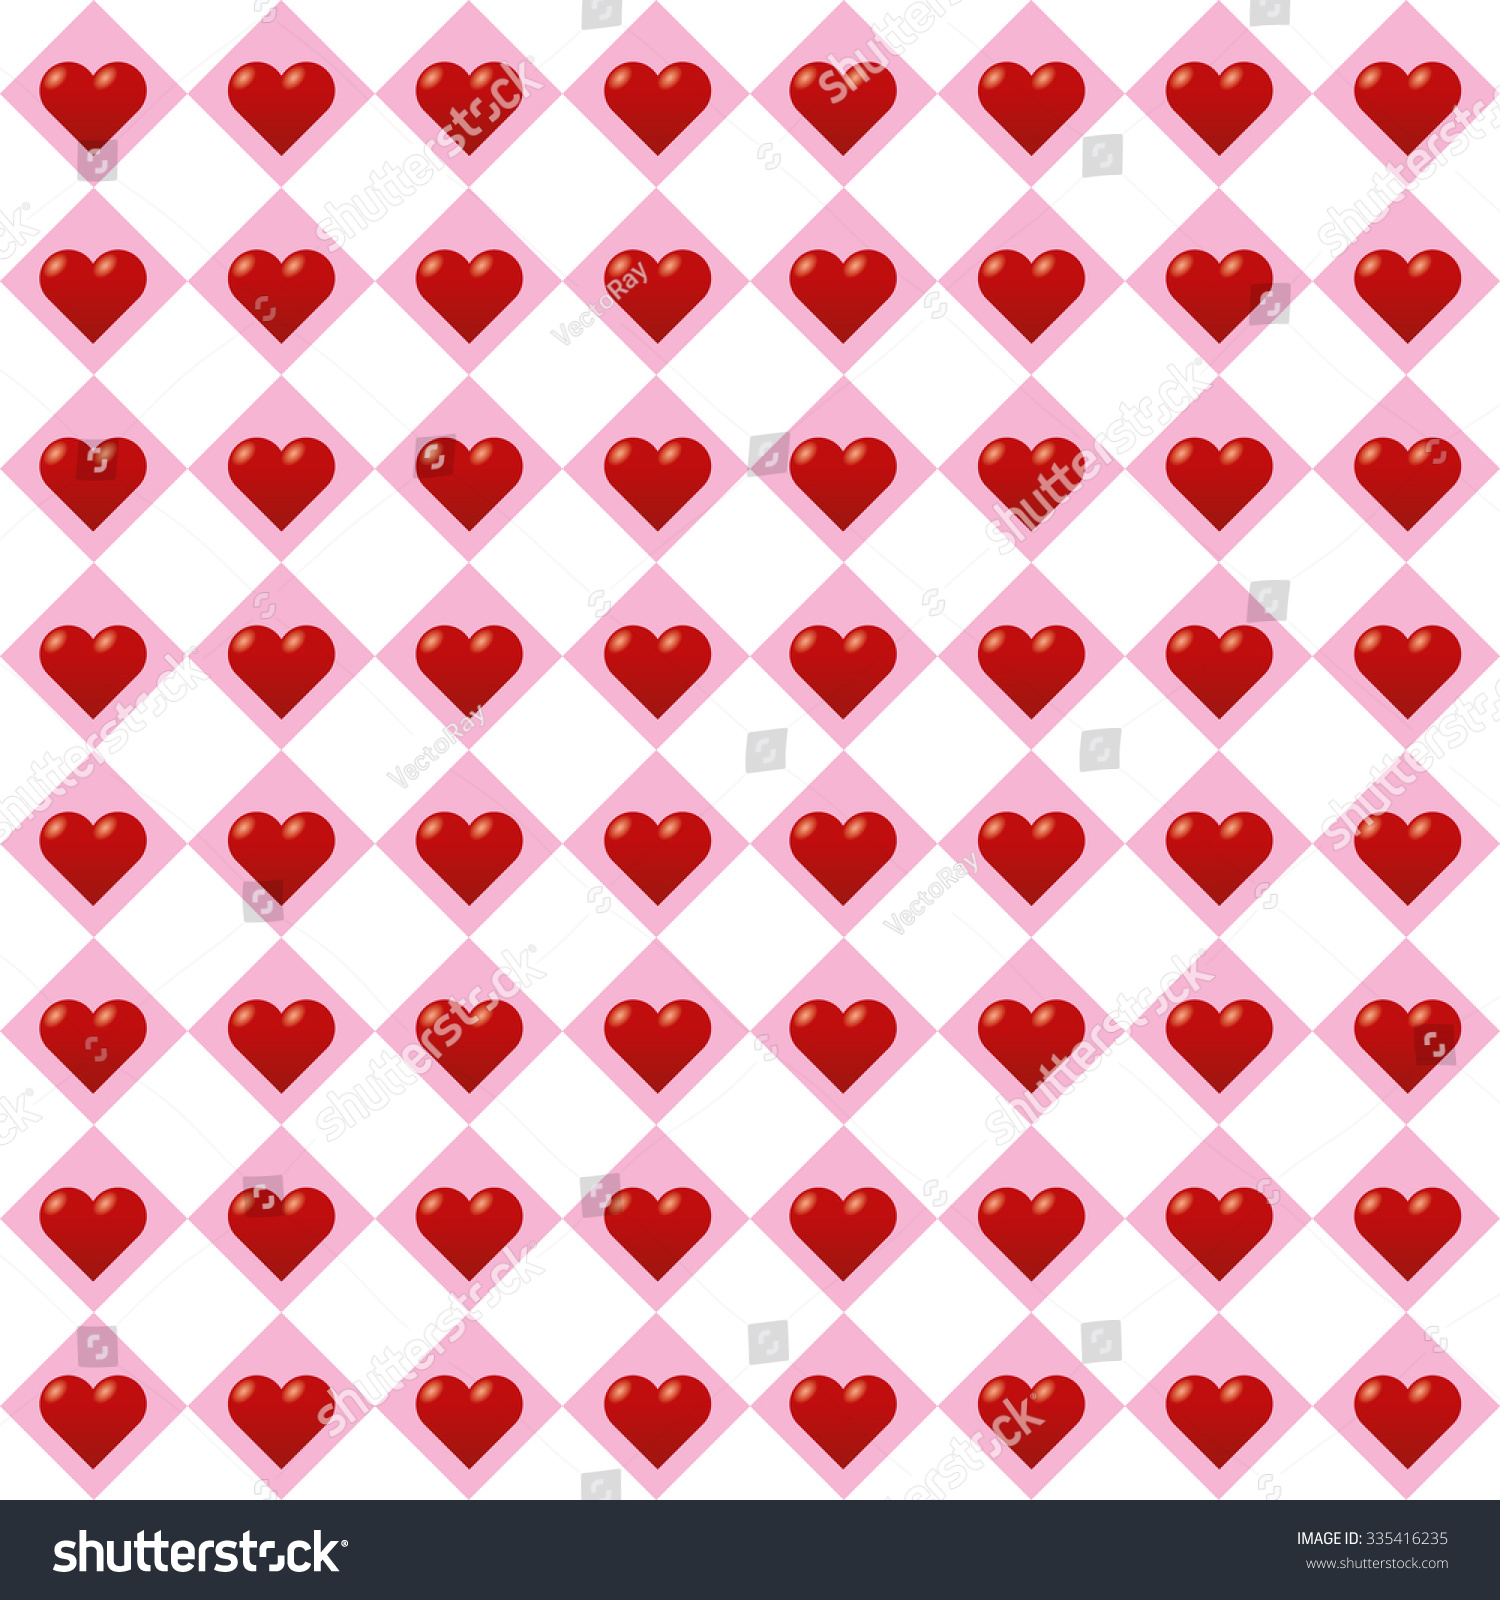 ideal for valentines day wrapping paper - Valentines Day Wrapping Paper